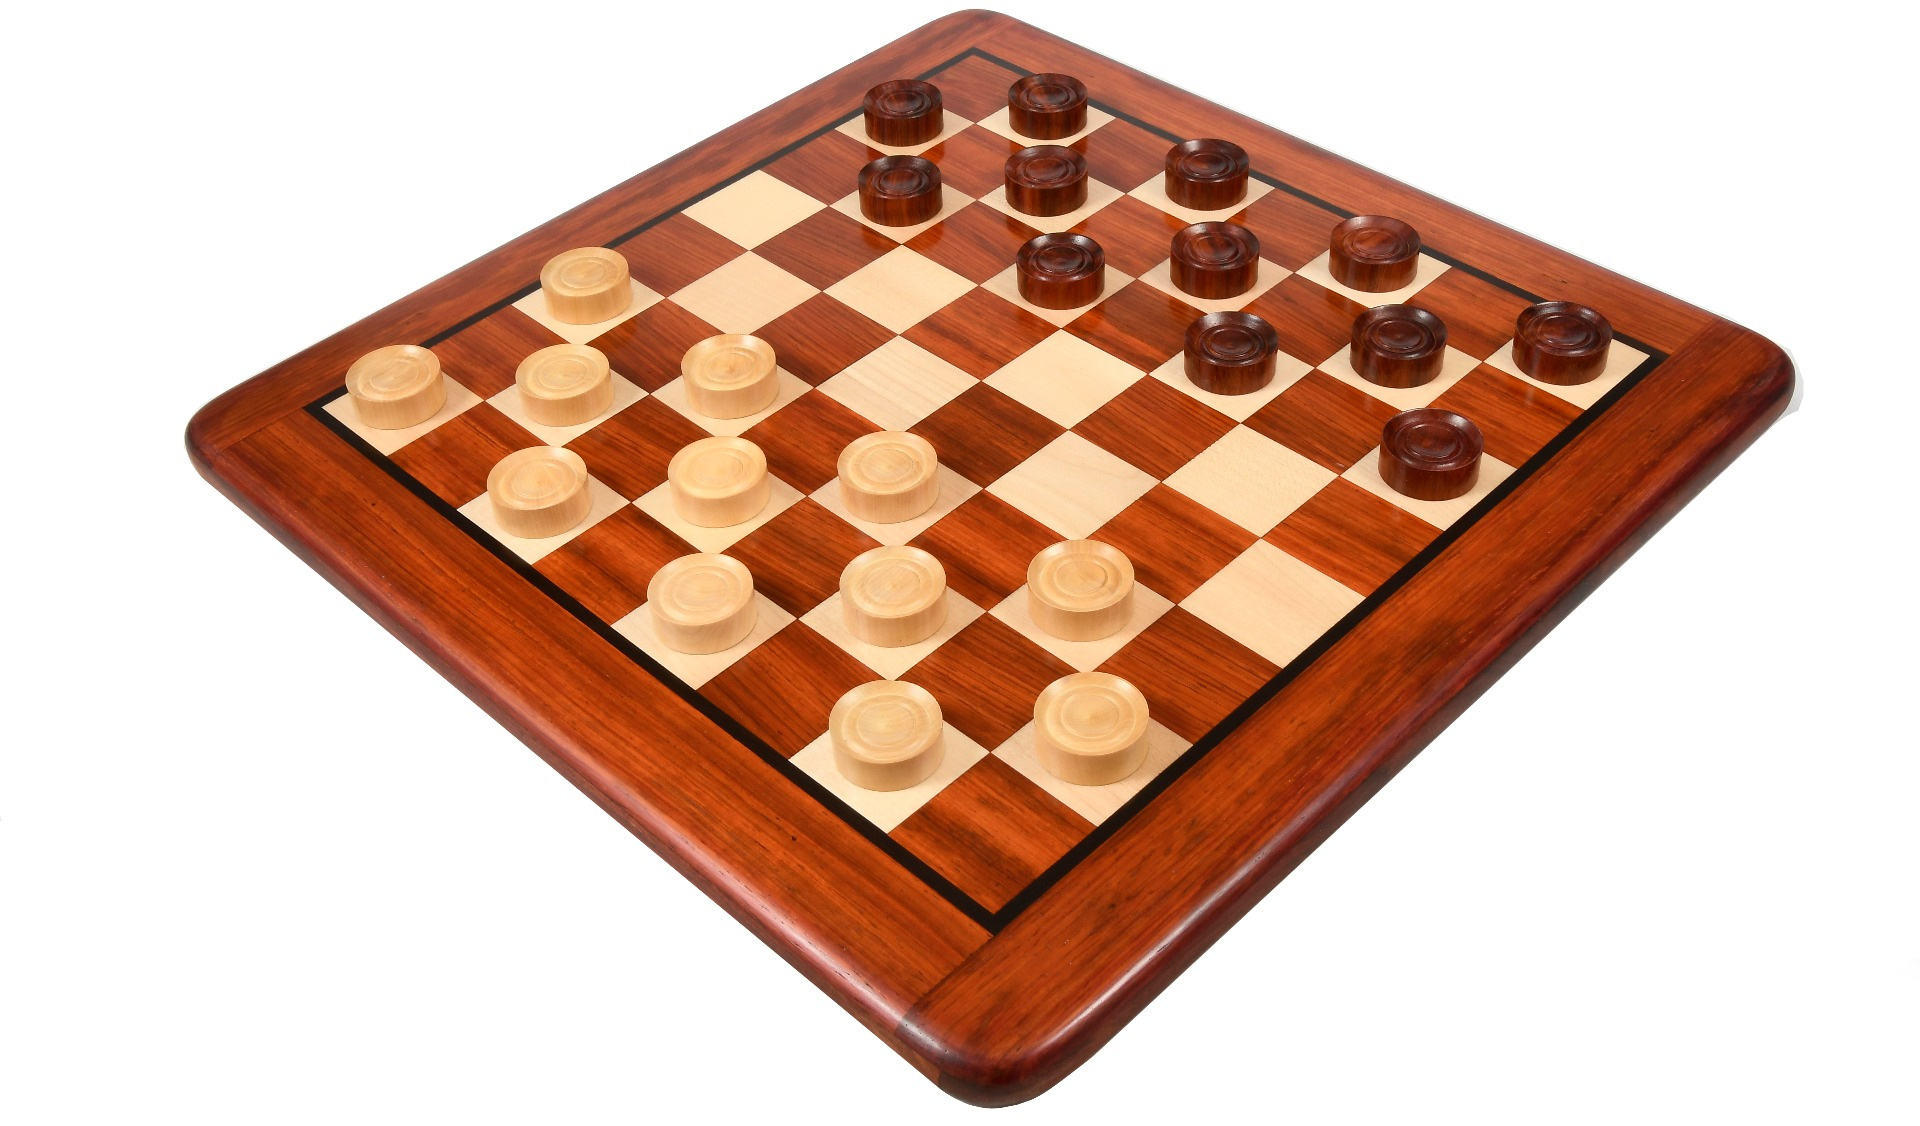 Wooden Checkers / Draught Set in Bud Rose Wood & Box wood - 35mm